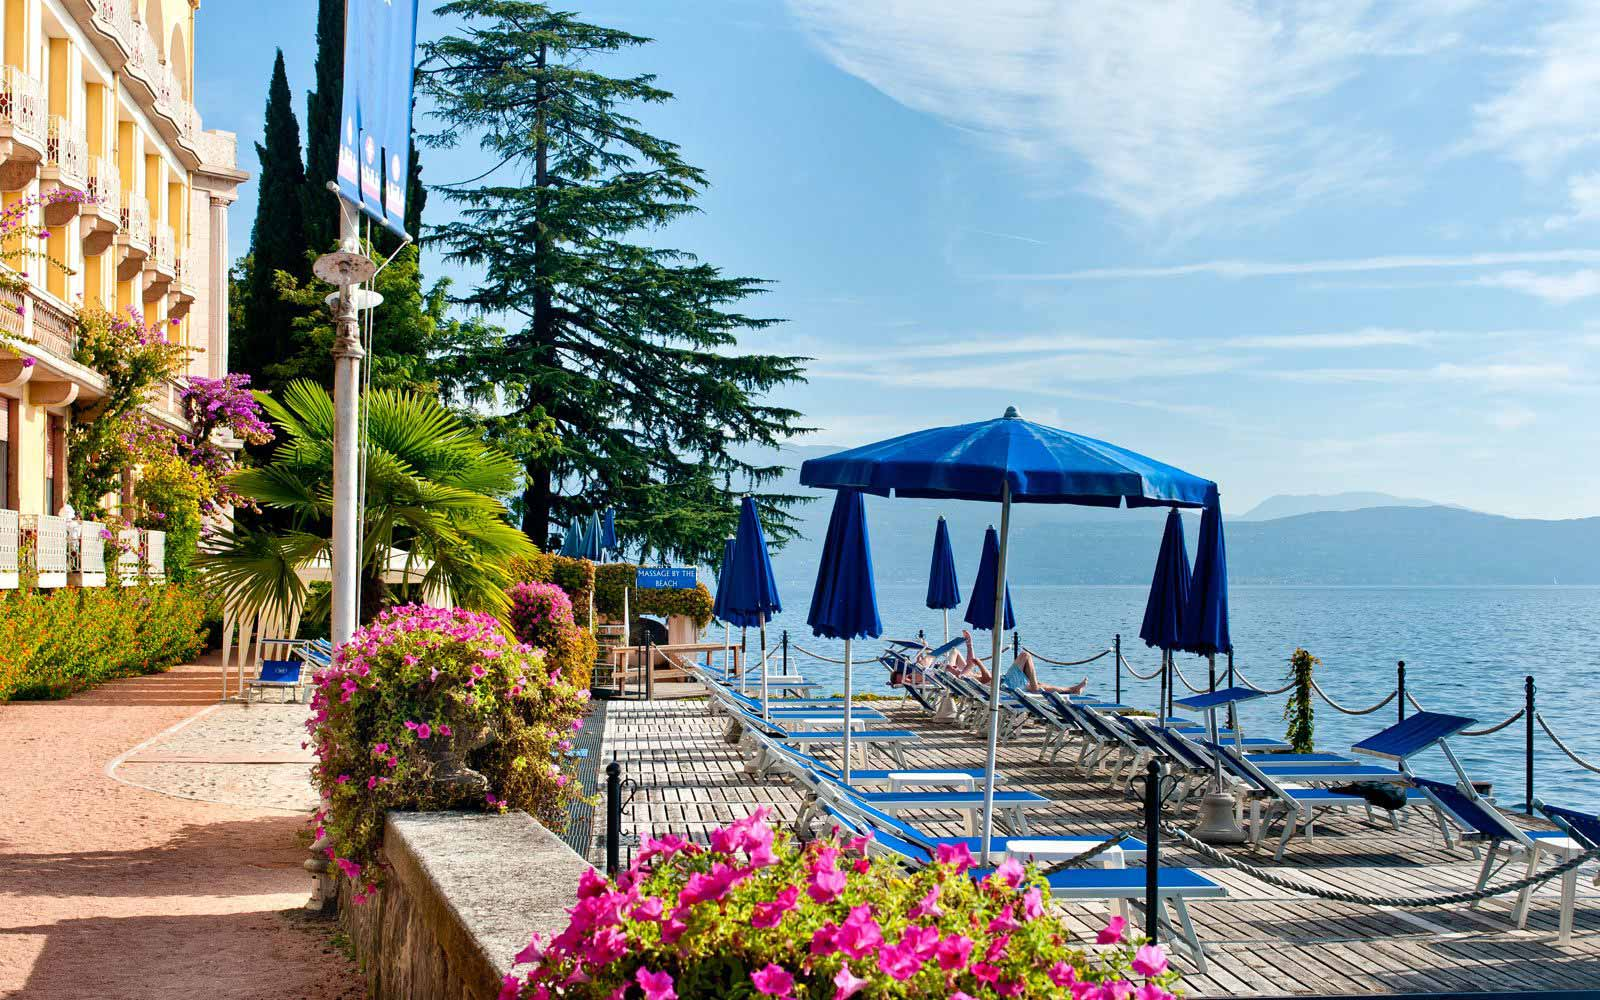 Sunbathing deck at Grand Hotel Gardone